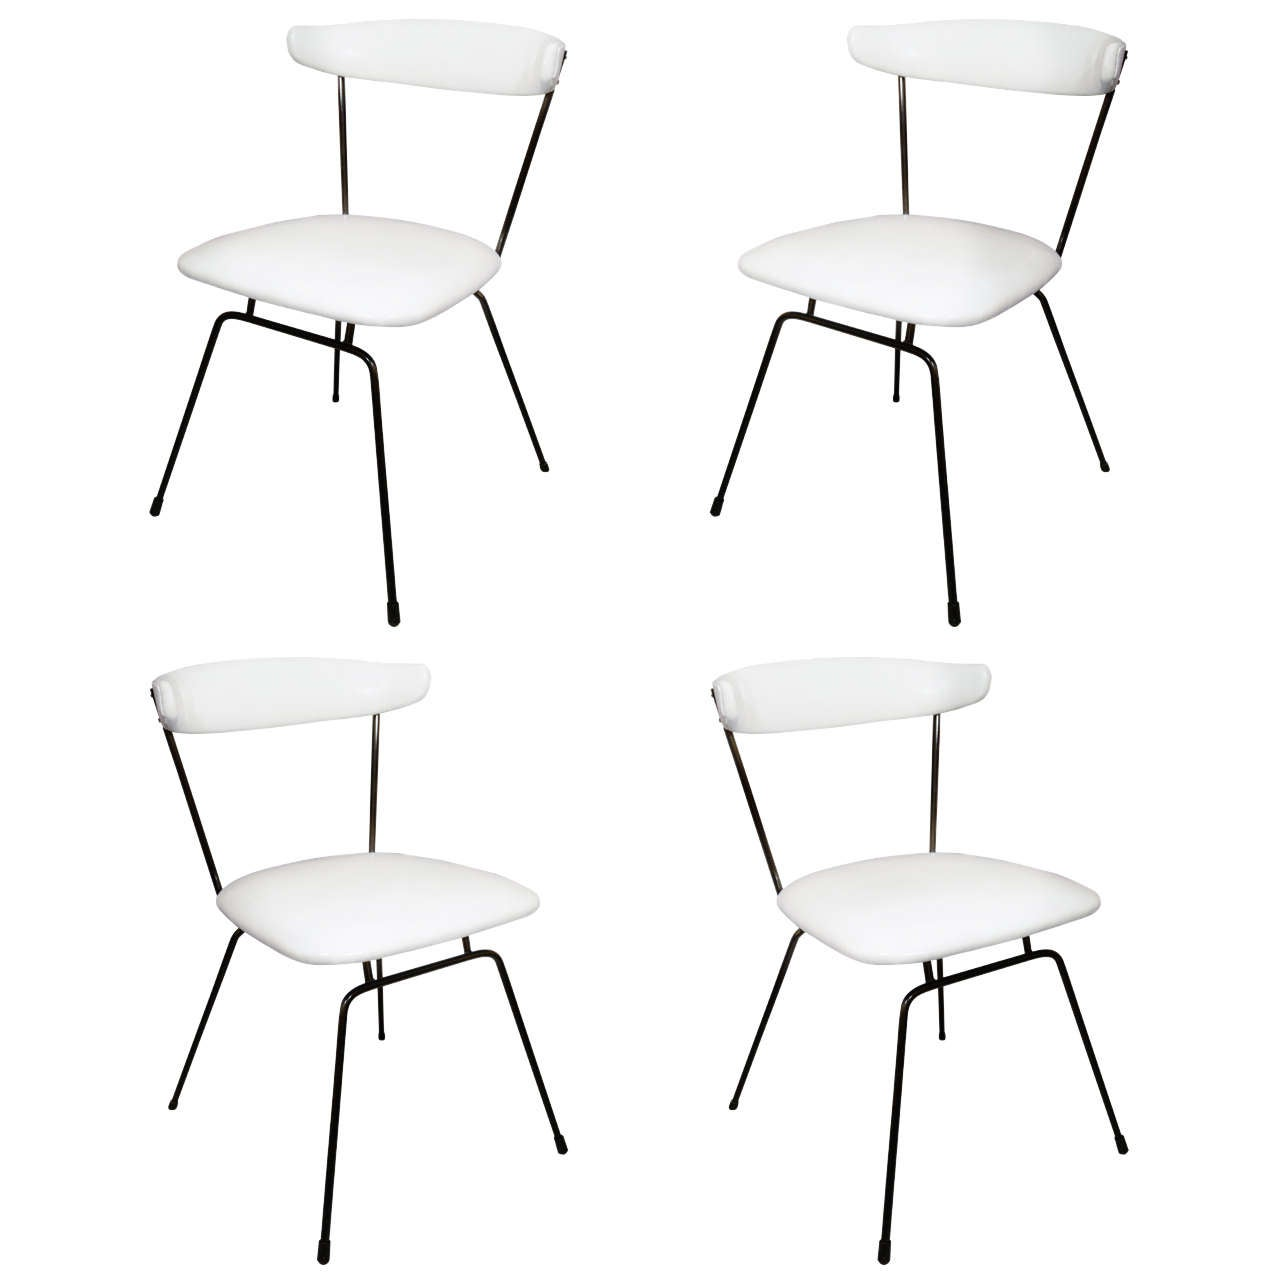 White Leather Dining Room Set: Set Of 4 Iron Dining Chairs By Clifford Pascoe In White